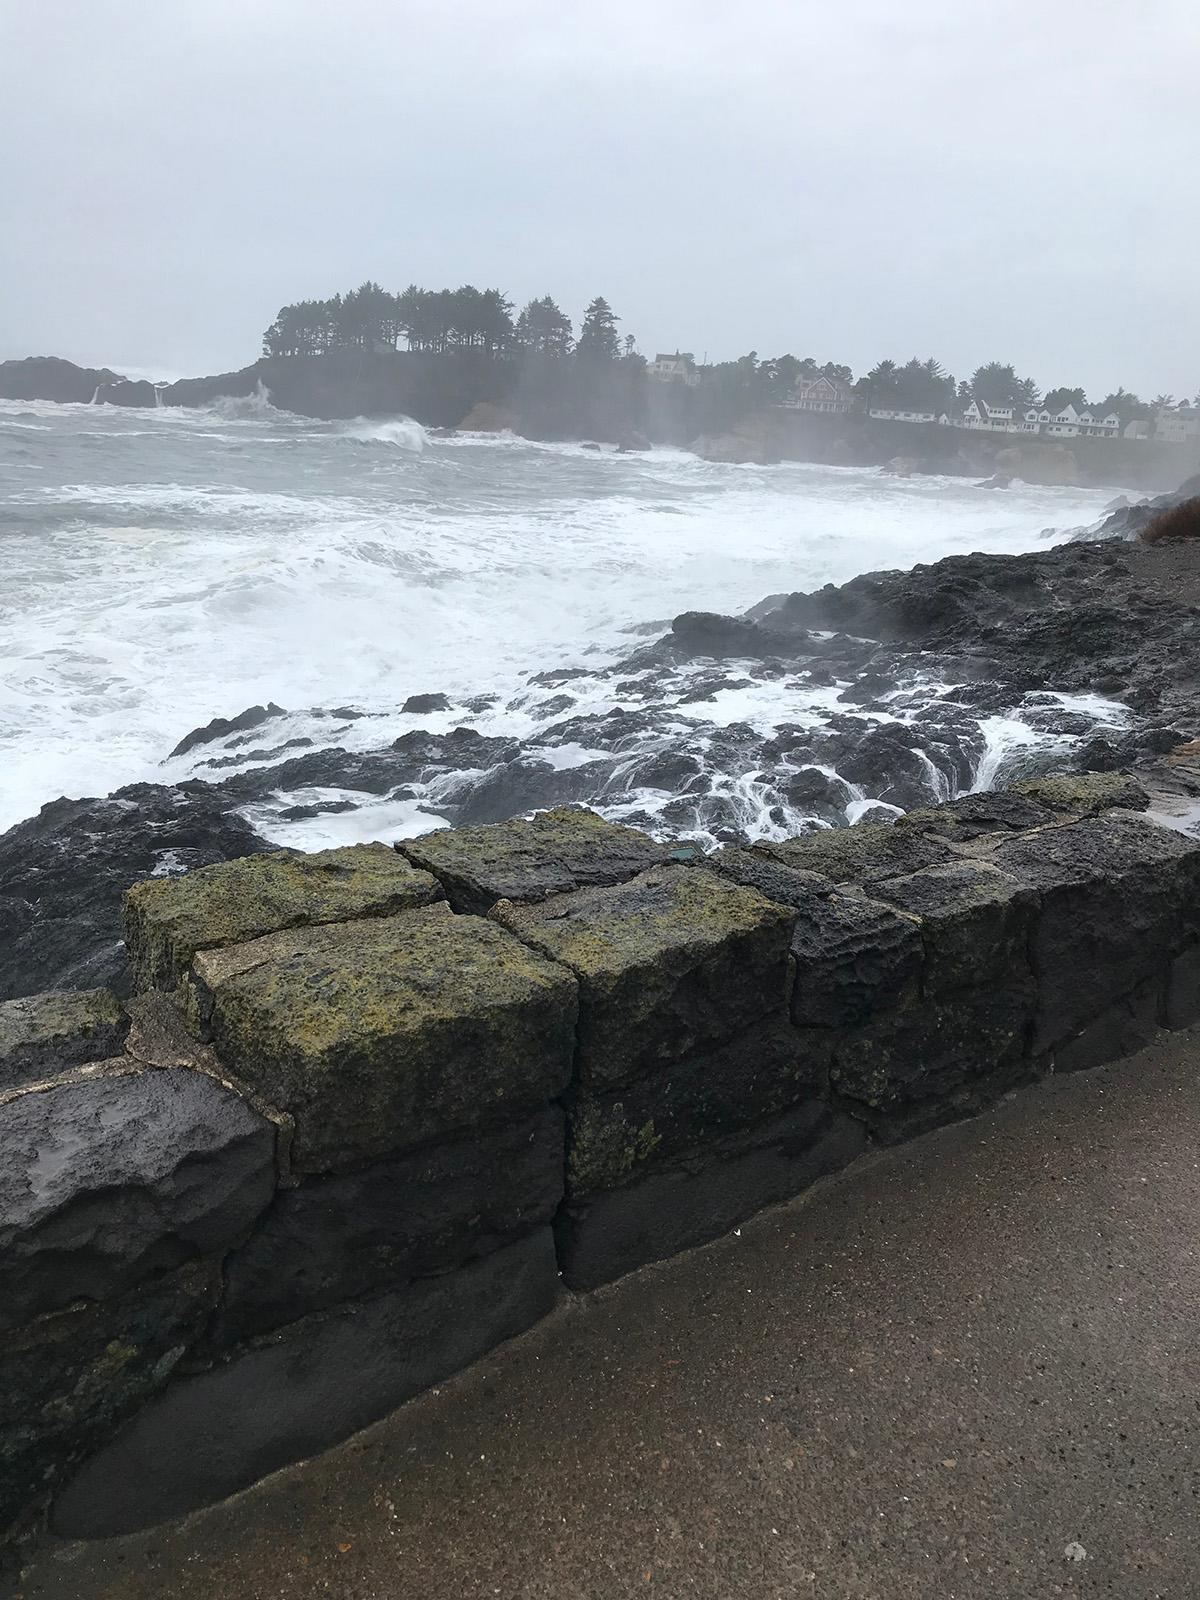 Sea wall at Depoe Bay - Image from Oregon State Police on January 18, 2018.jpeg